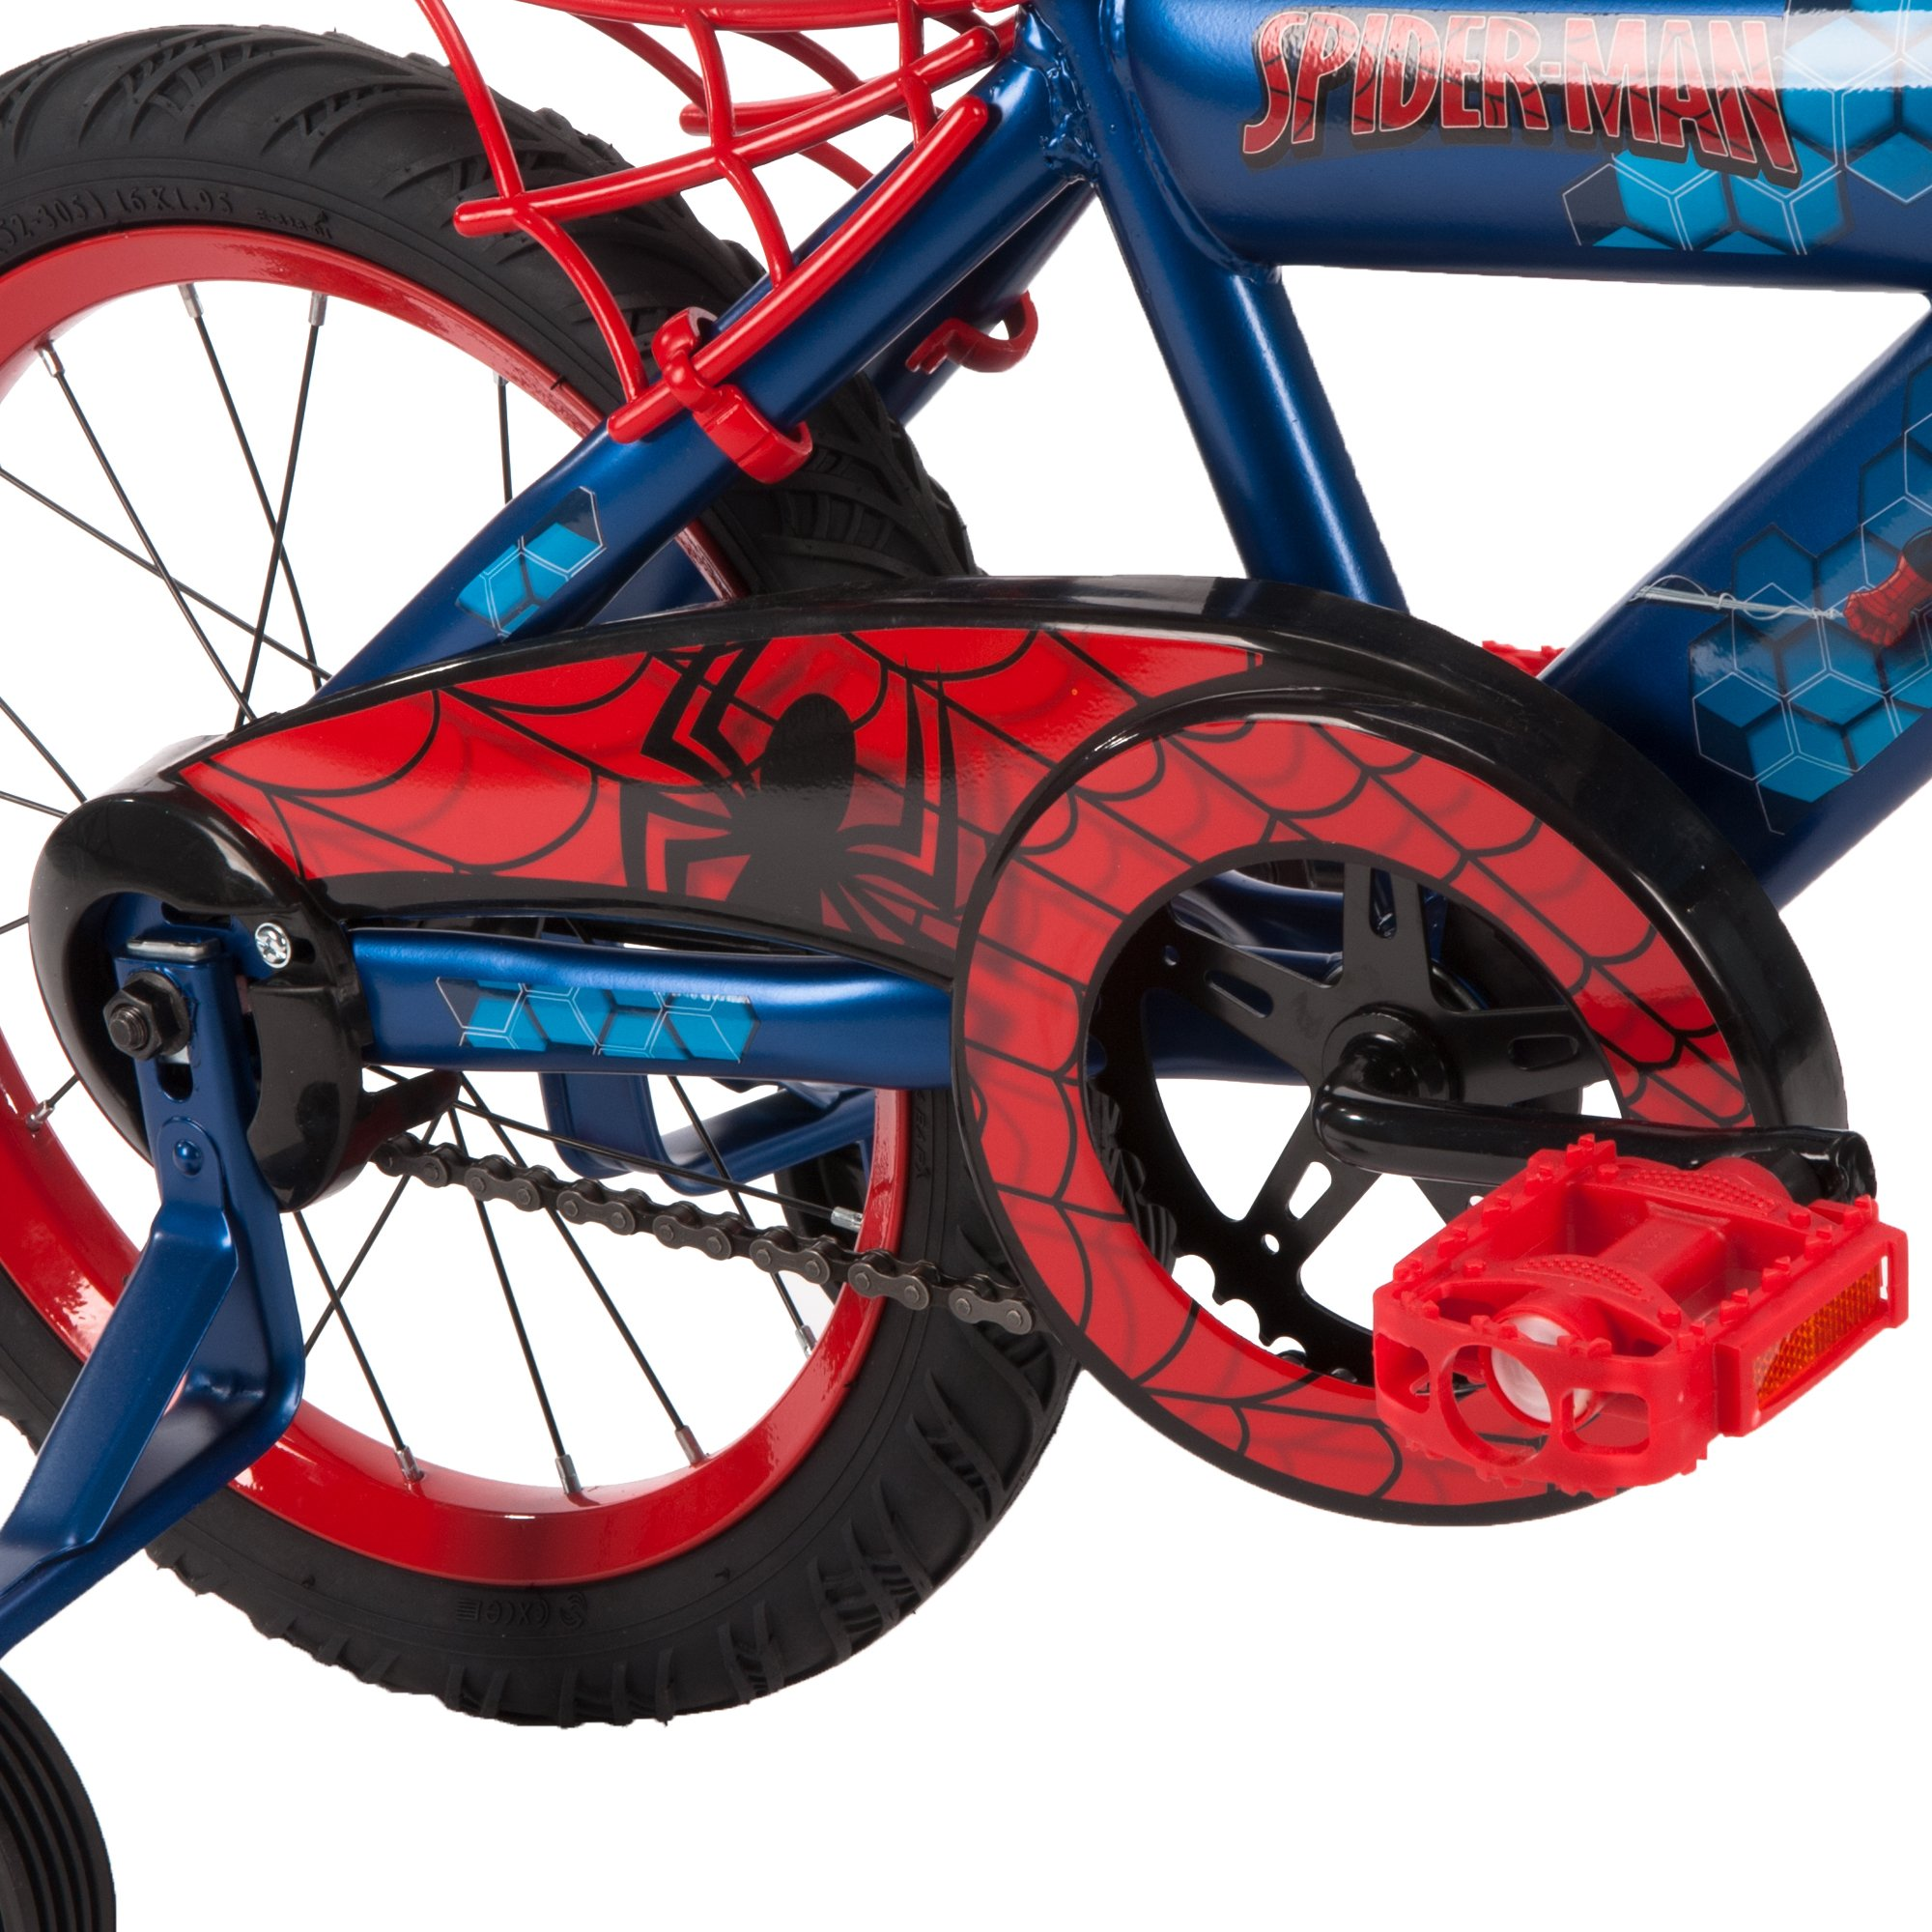 16'' Marvel Spider-Man Bike by Huffy, Ages 4-6, Height 42-48'' by Huffy (Image #7)